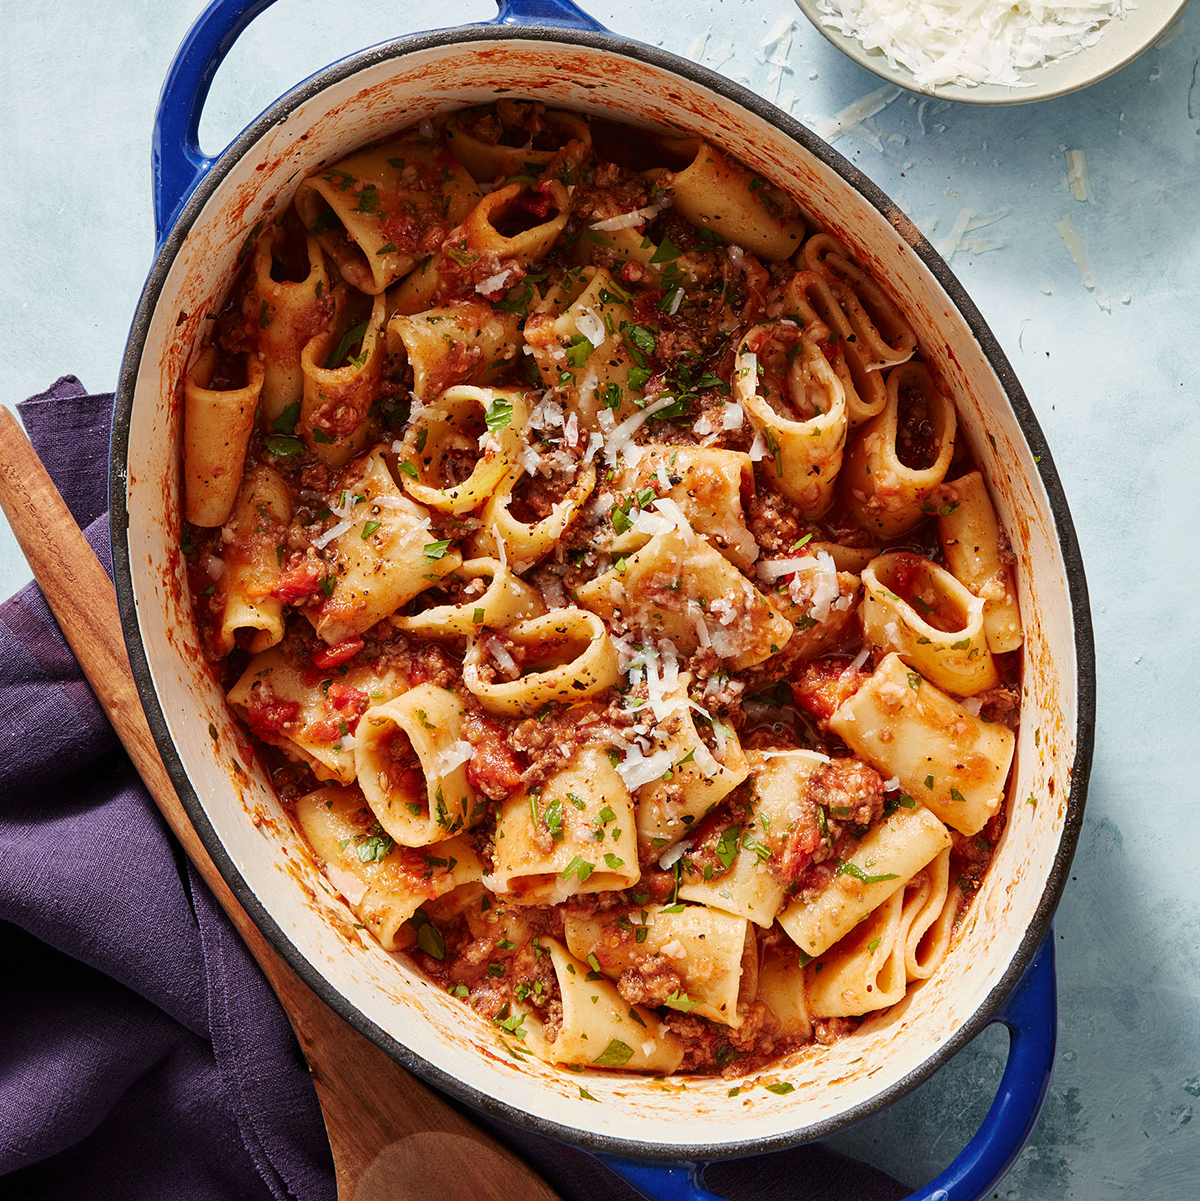 Charred Eggplant & Meat Sauce with Paccheri